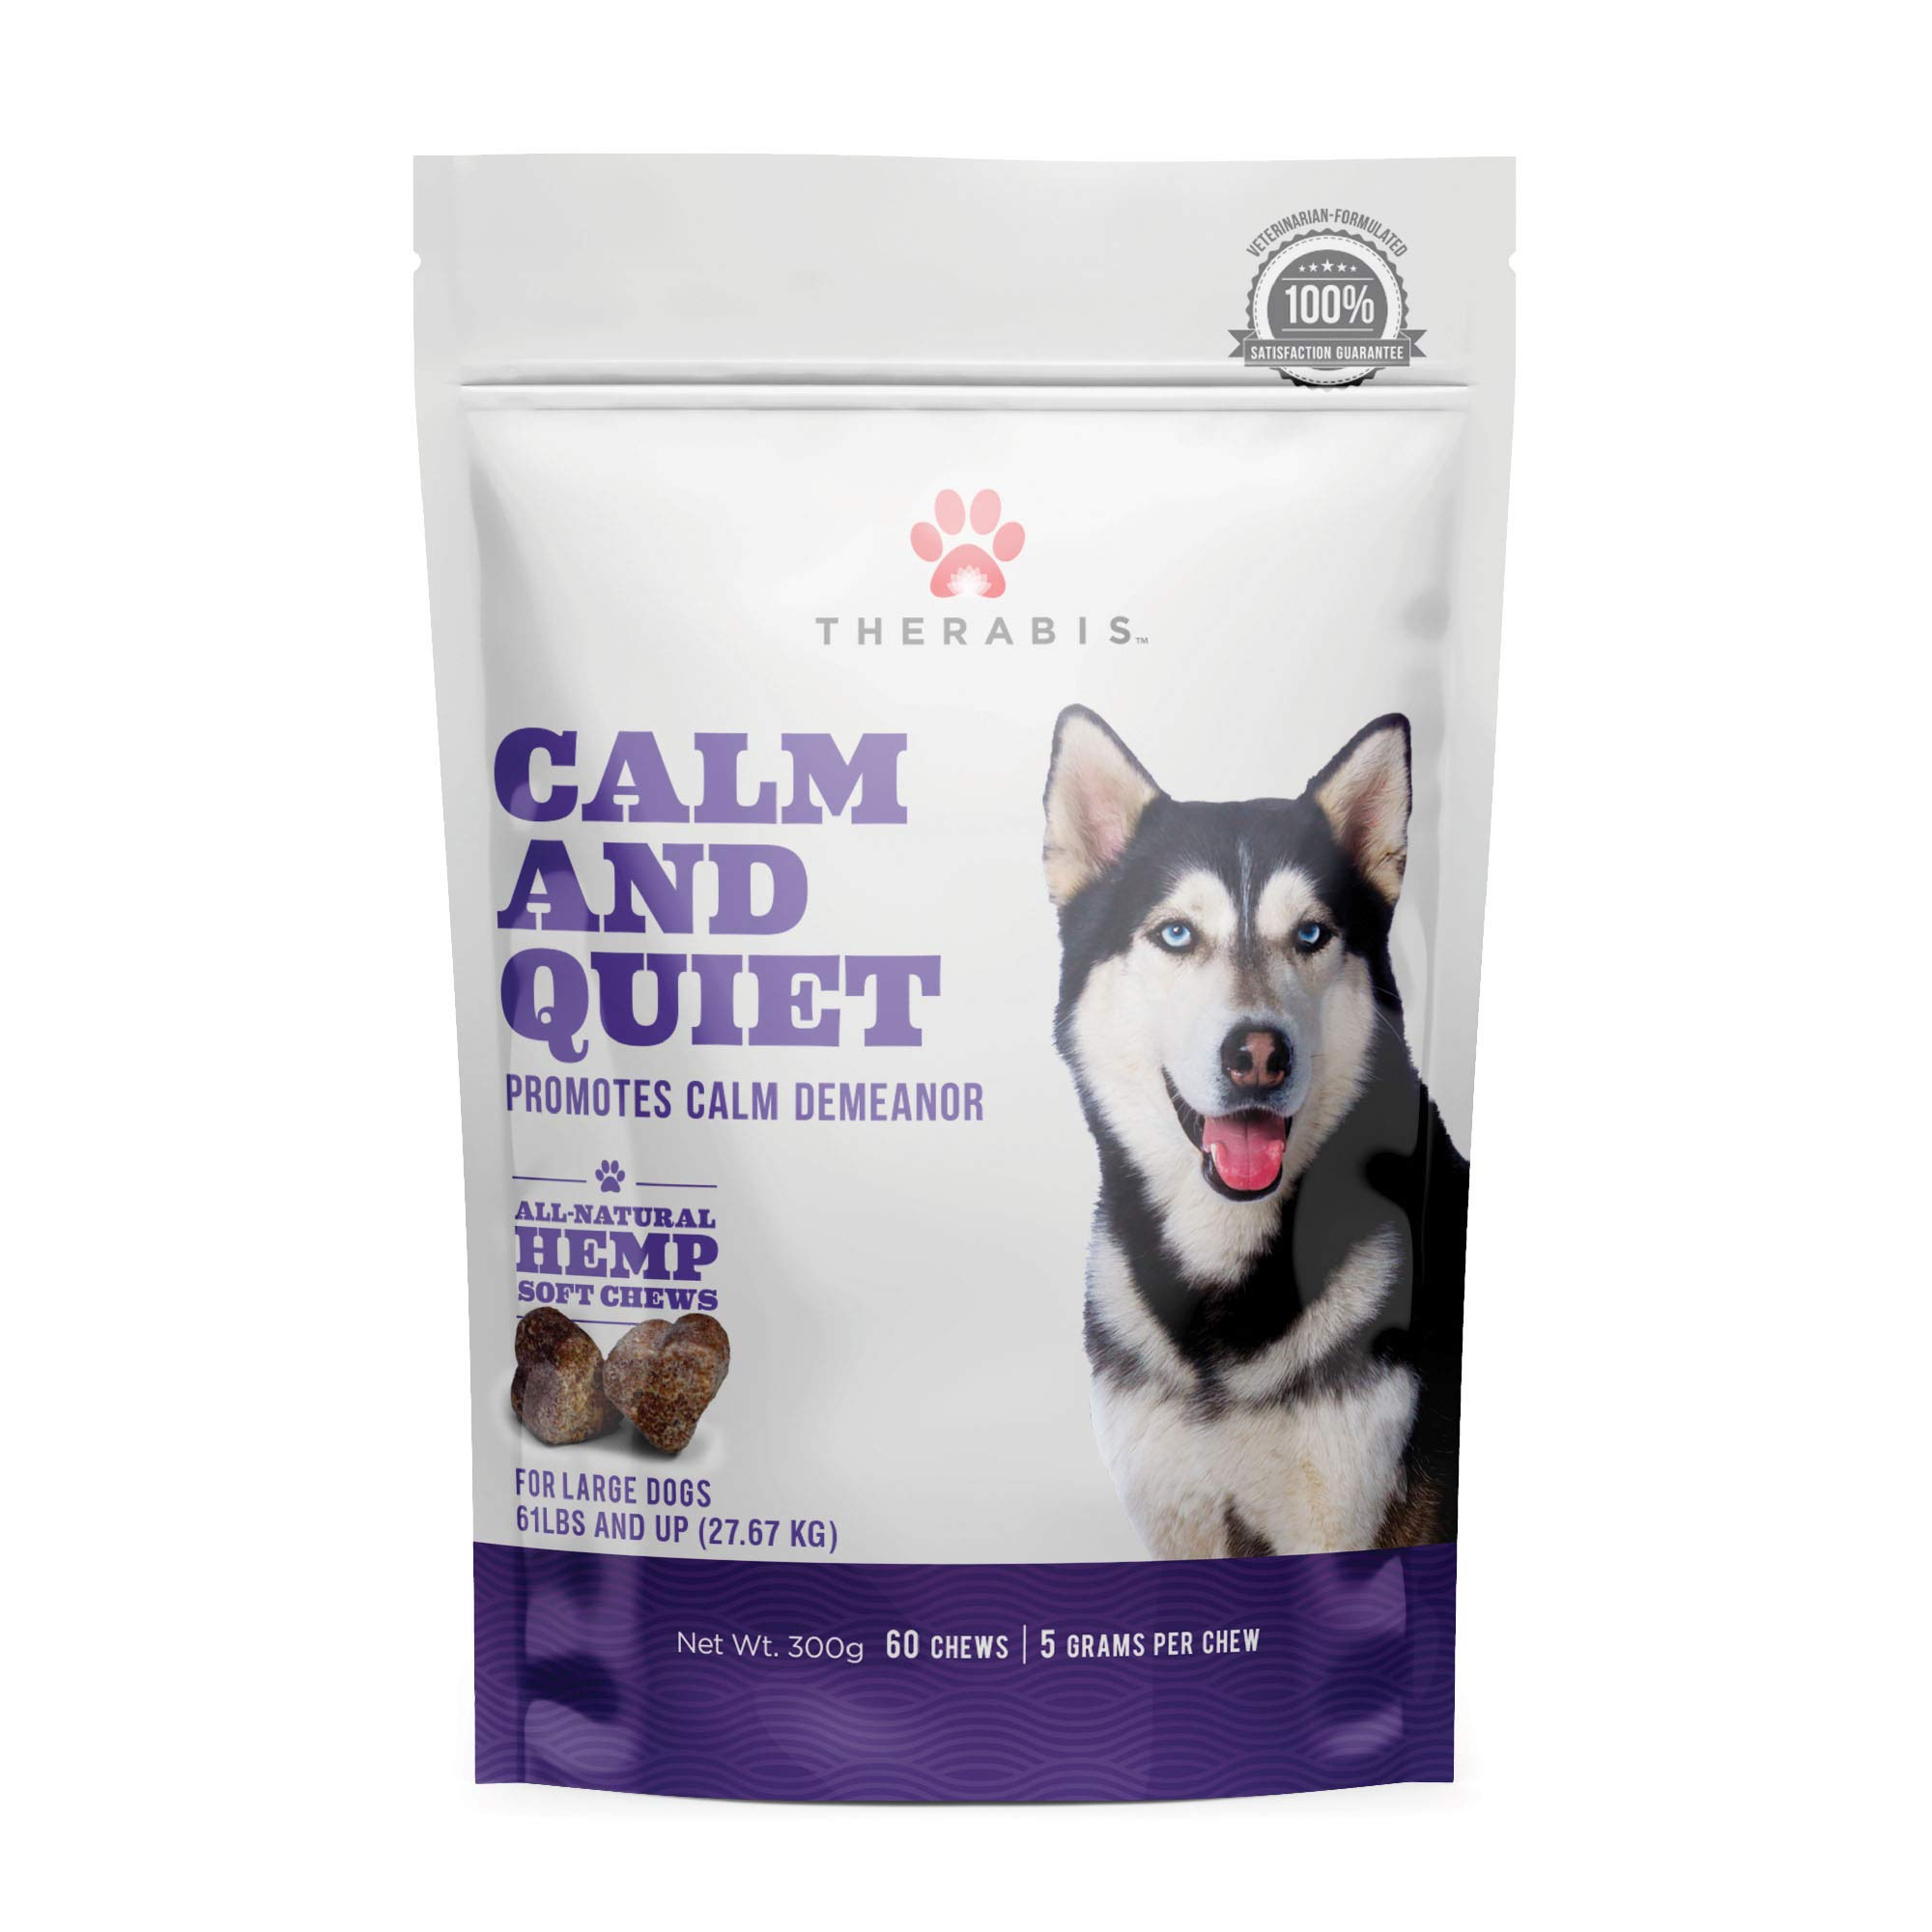 Therabis Calm and Quiet Treat Supplements (Large Dogs Over 60lbs) by Therabis